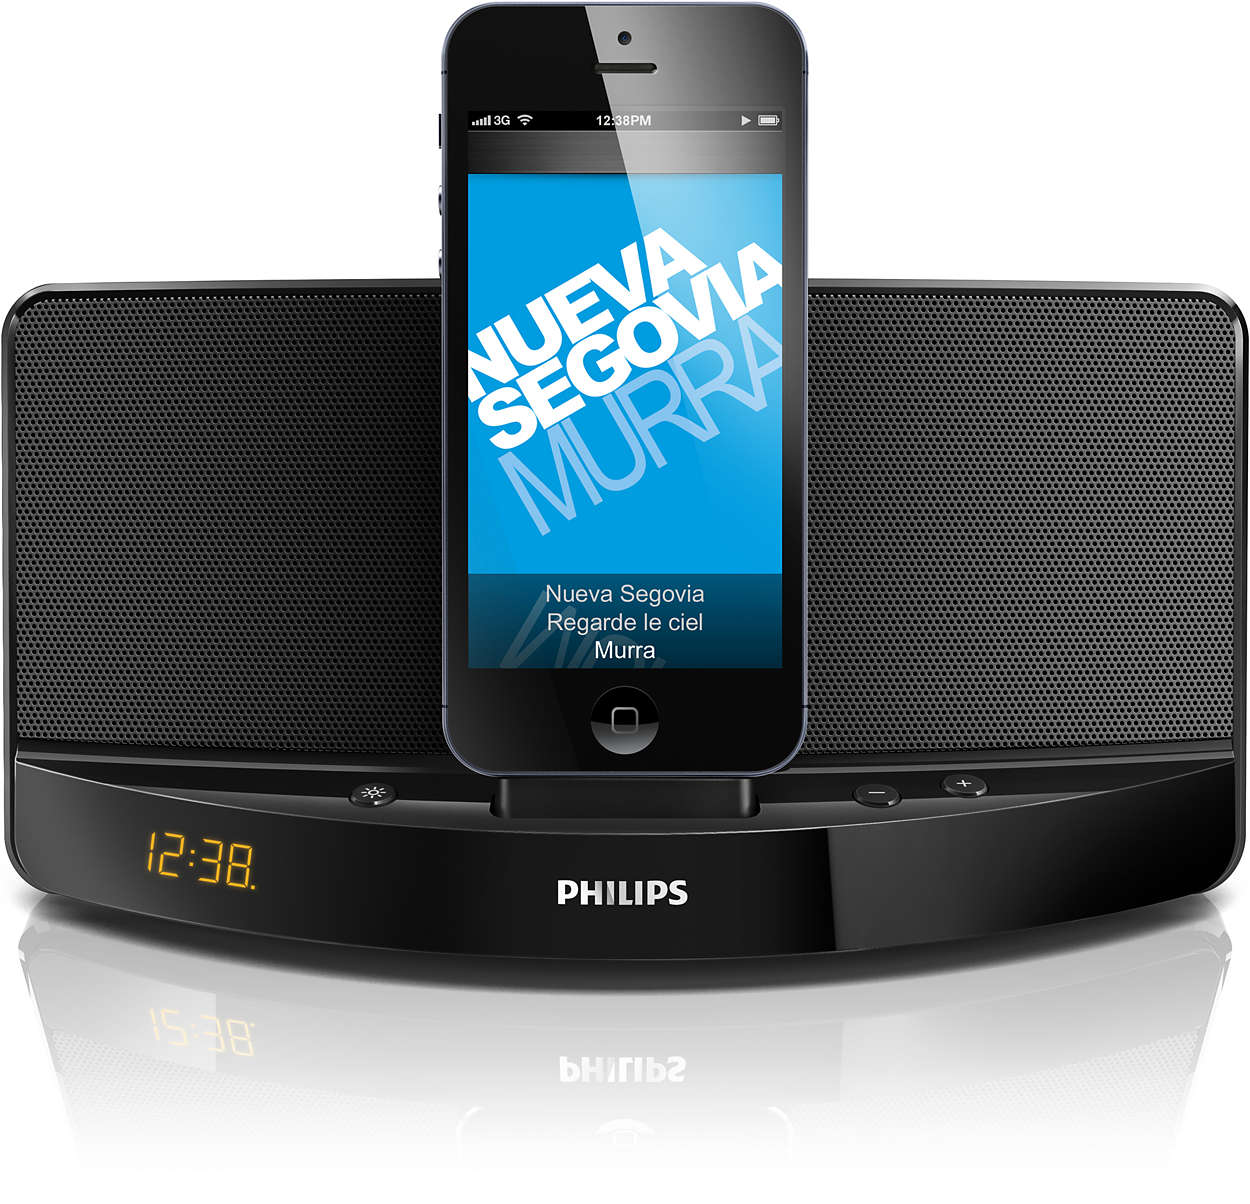 Adapter For Iphone  To Fit Docking Station